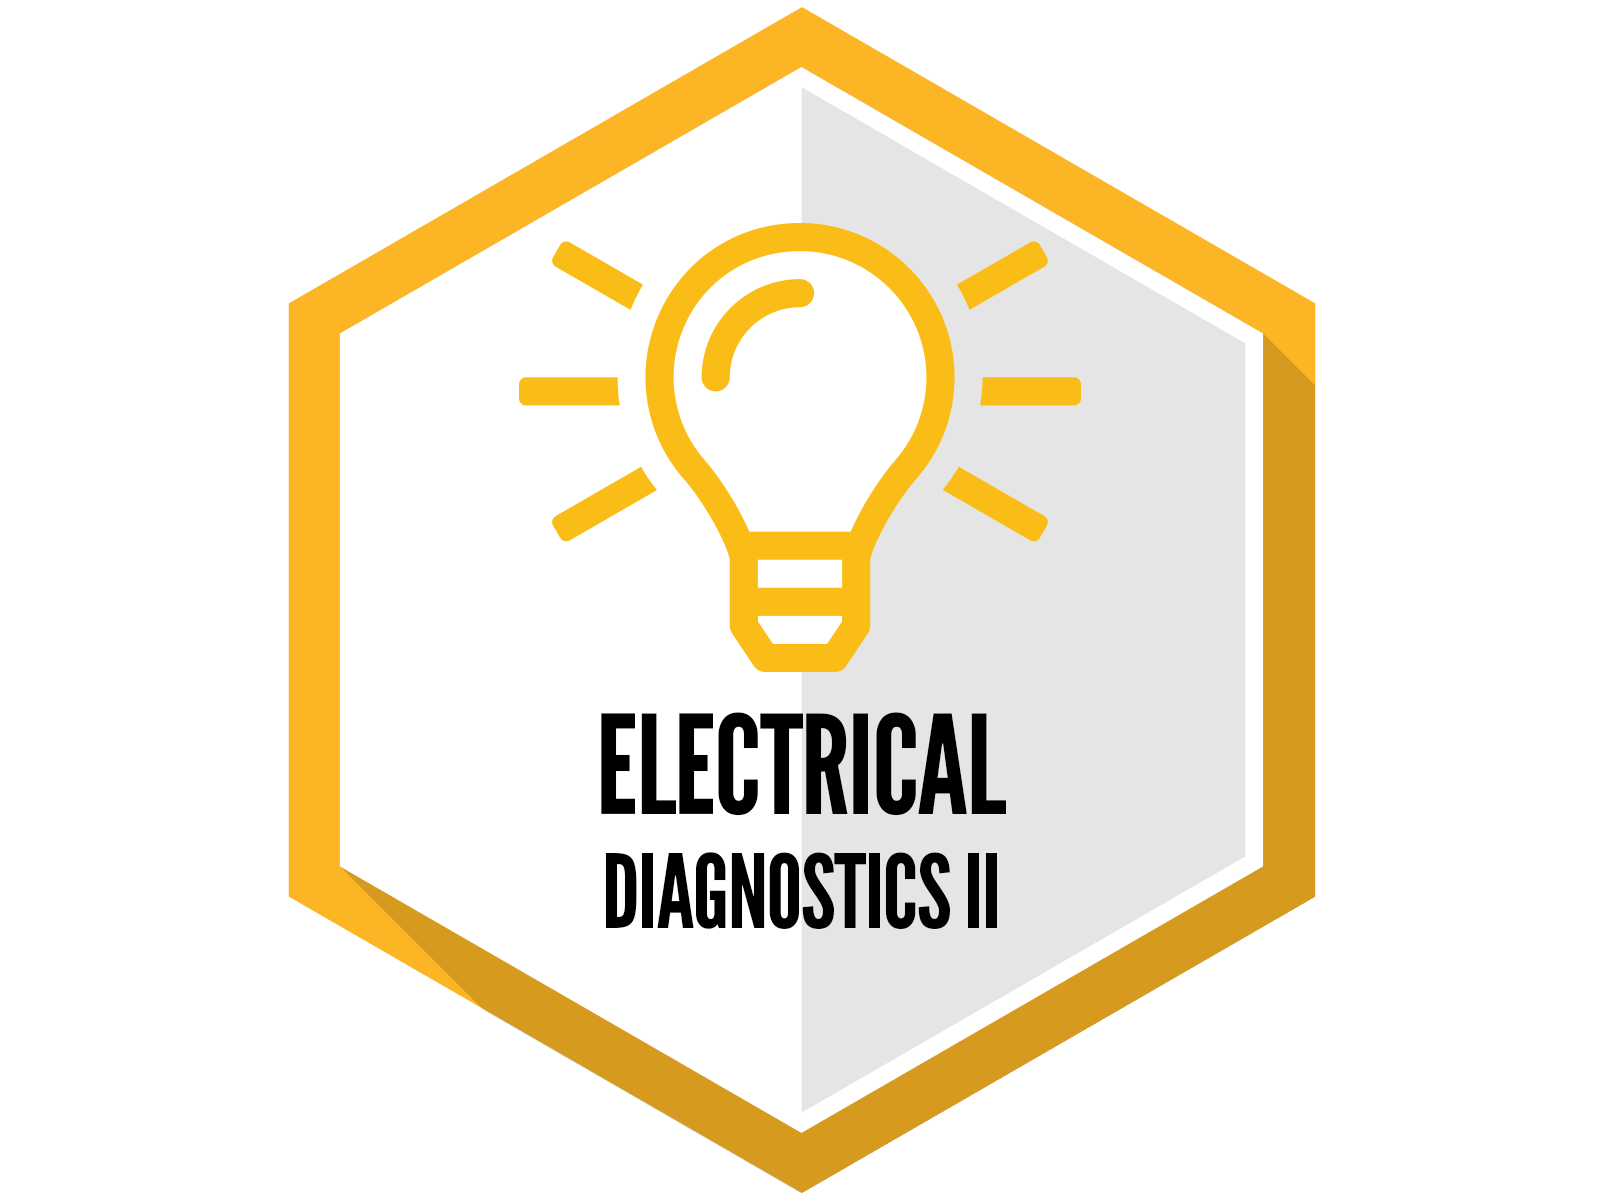 Electrical Diagnostics II - Irmo, SC